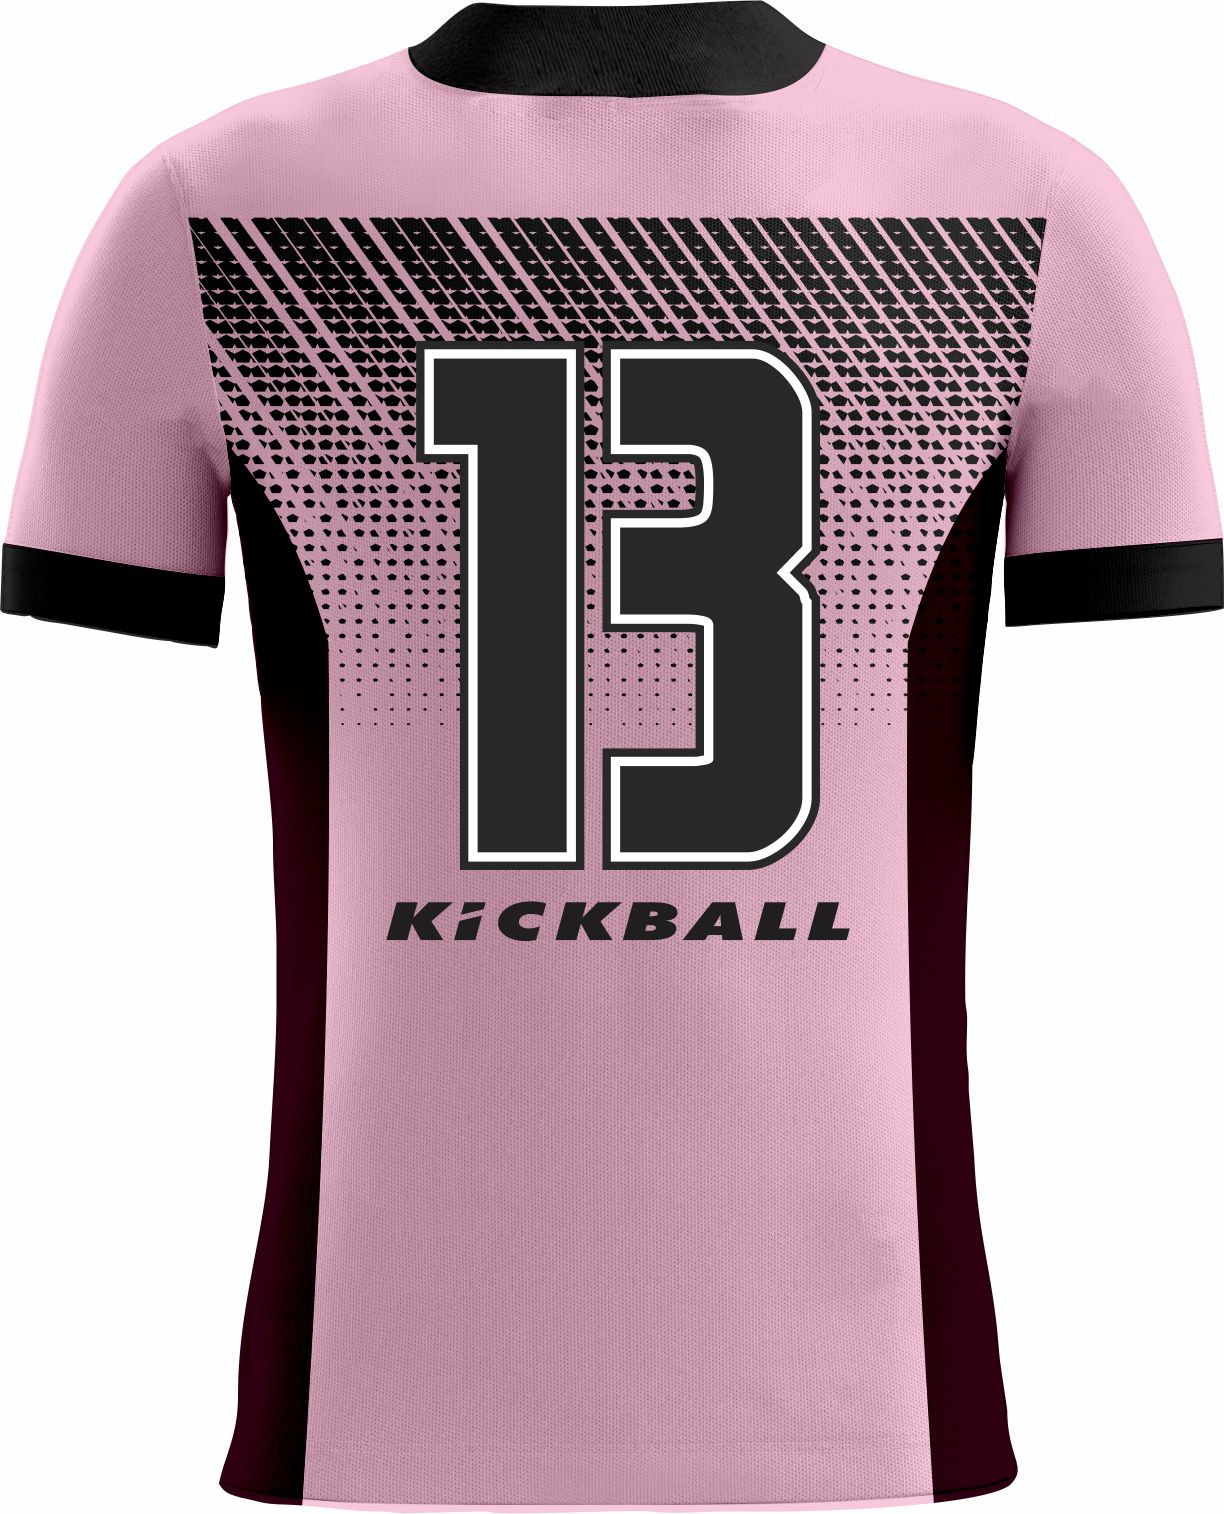 Camisa INFANTIL Galo FA Tryout Outubro Rosa